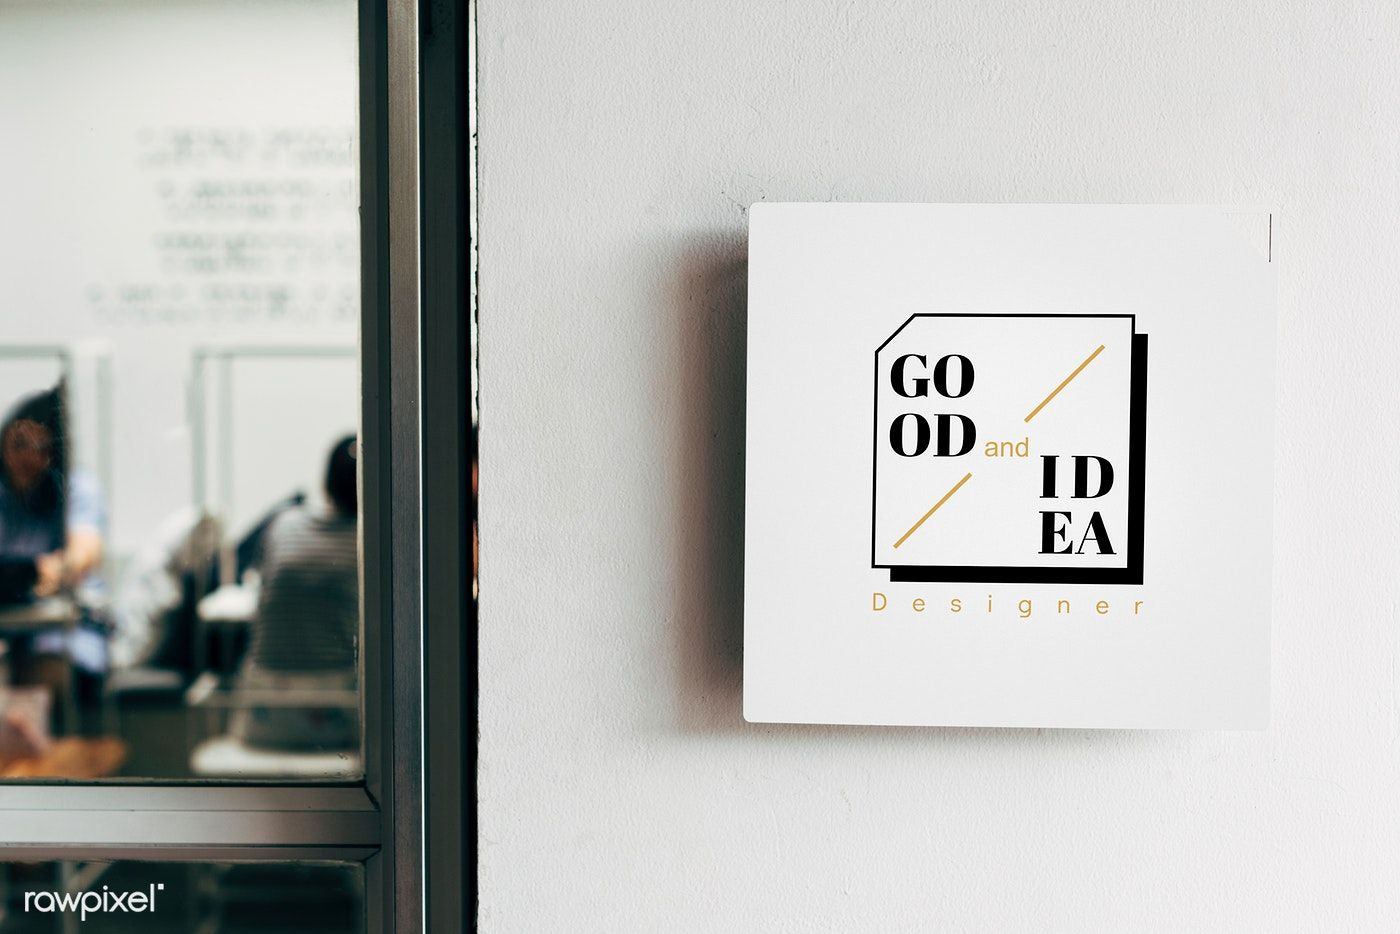 Mockup Of Wall Sign Boards Free Image By Rawpixel Com Sign Mockup Wall Signs Design Mockup Free